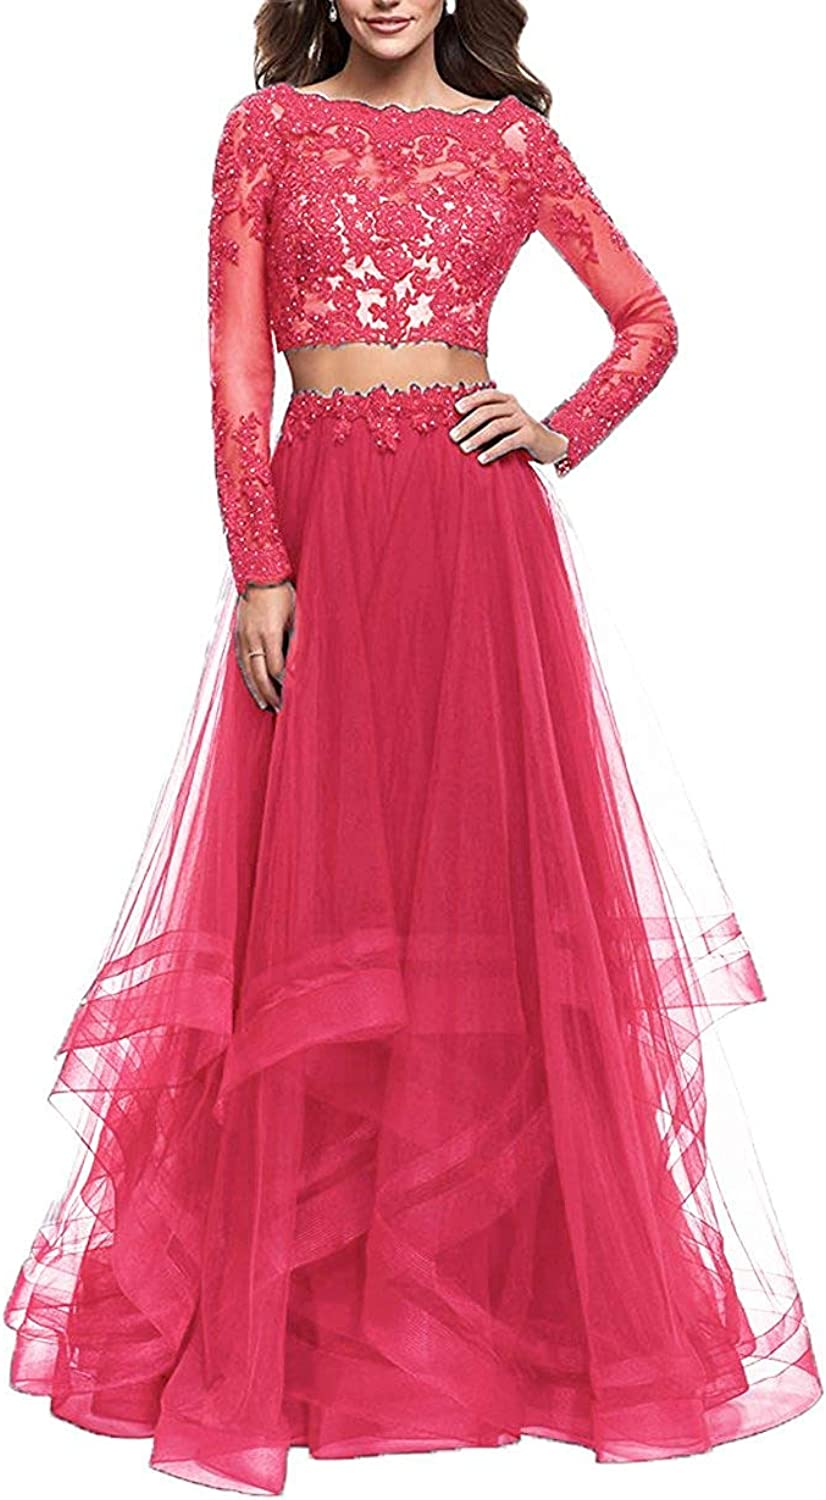 20KyleBird Two Pieces Lace Appliques Prom Dresses Long Sleeves Tulle Evening Party Gowns for Women Formal KB132